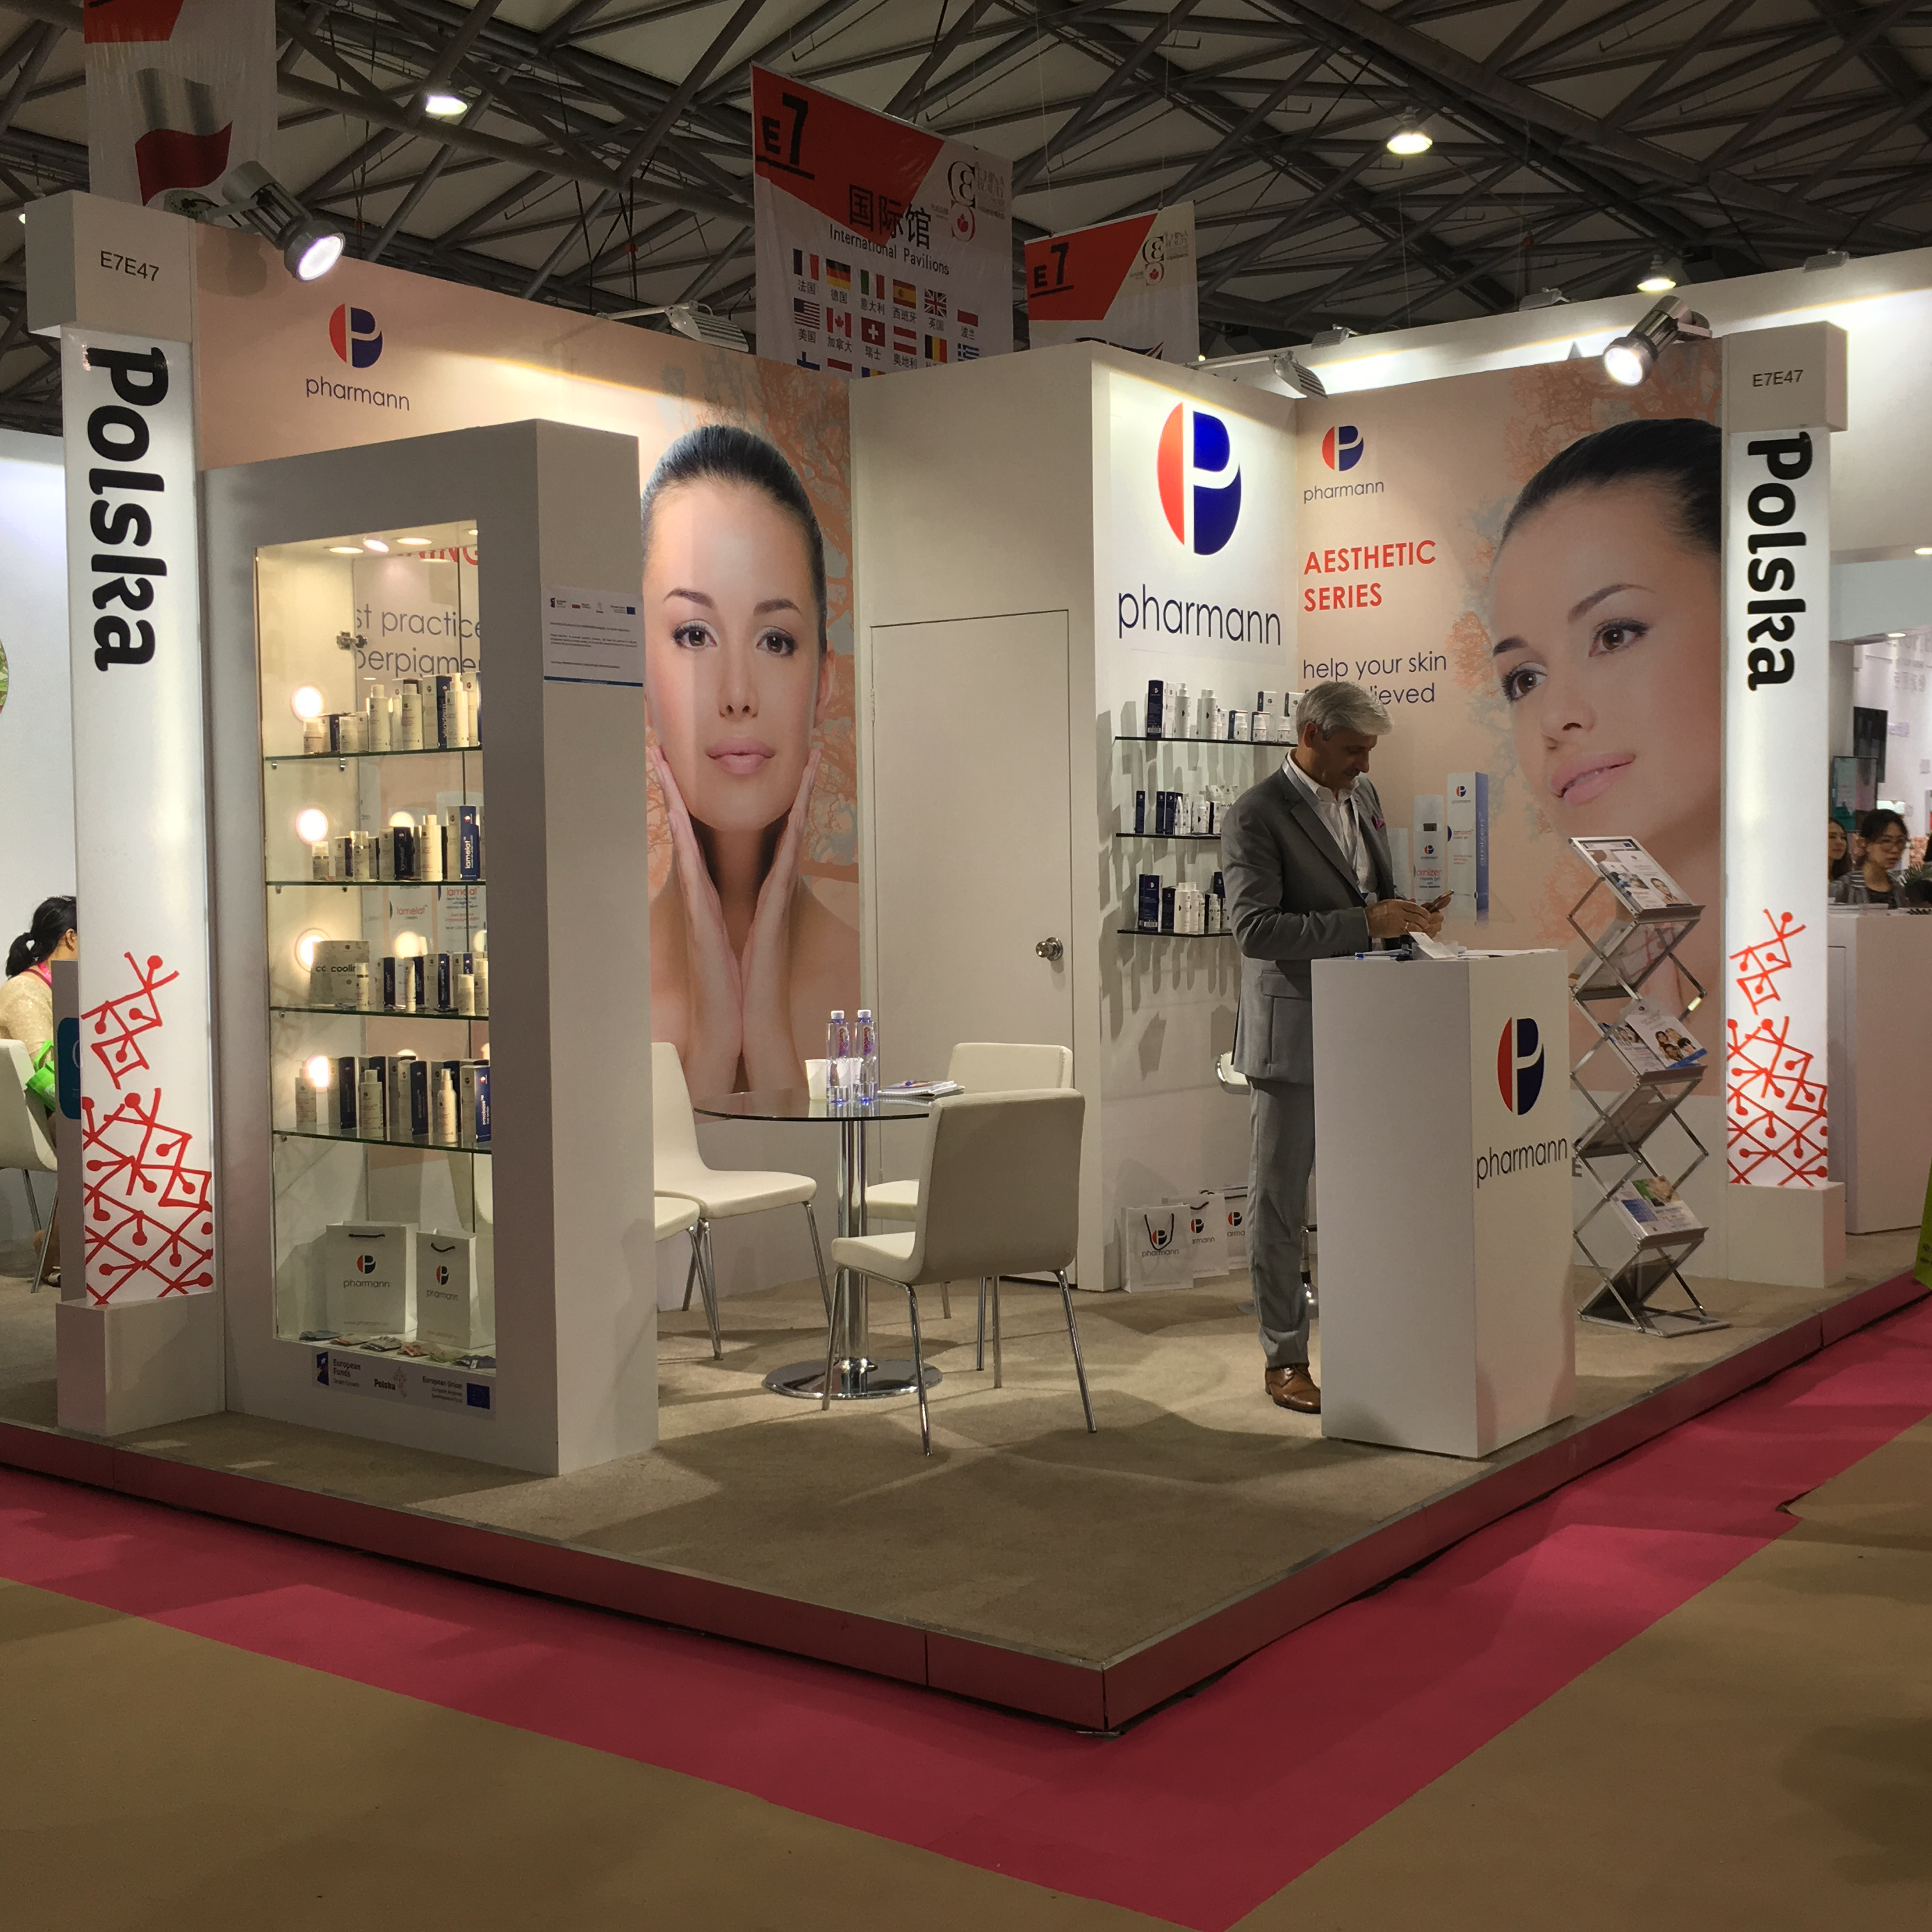 China Beauty Expo 2018 - Pharmann